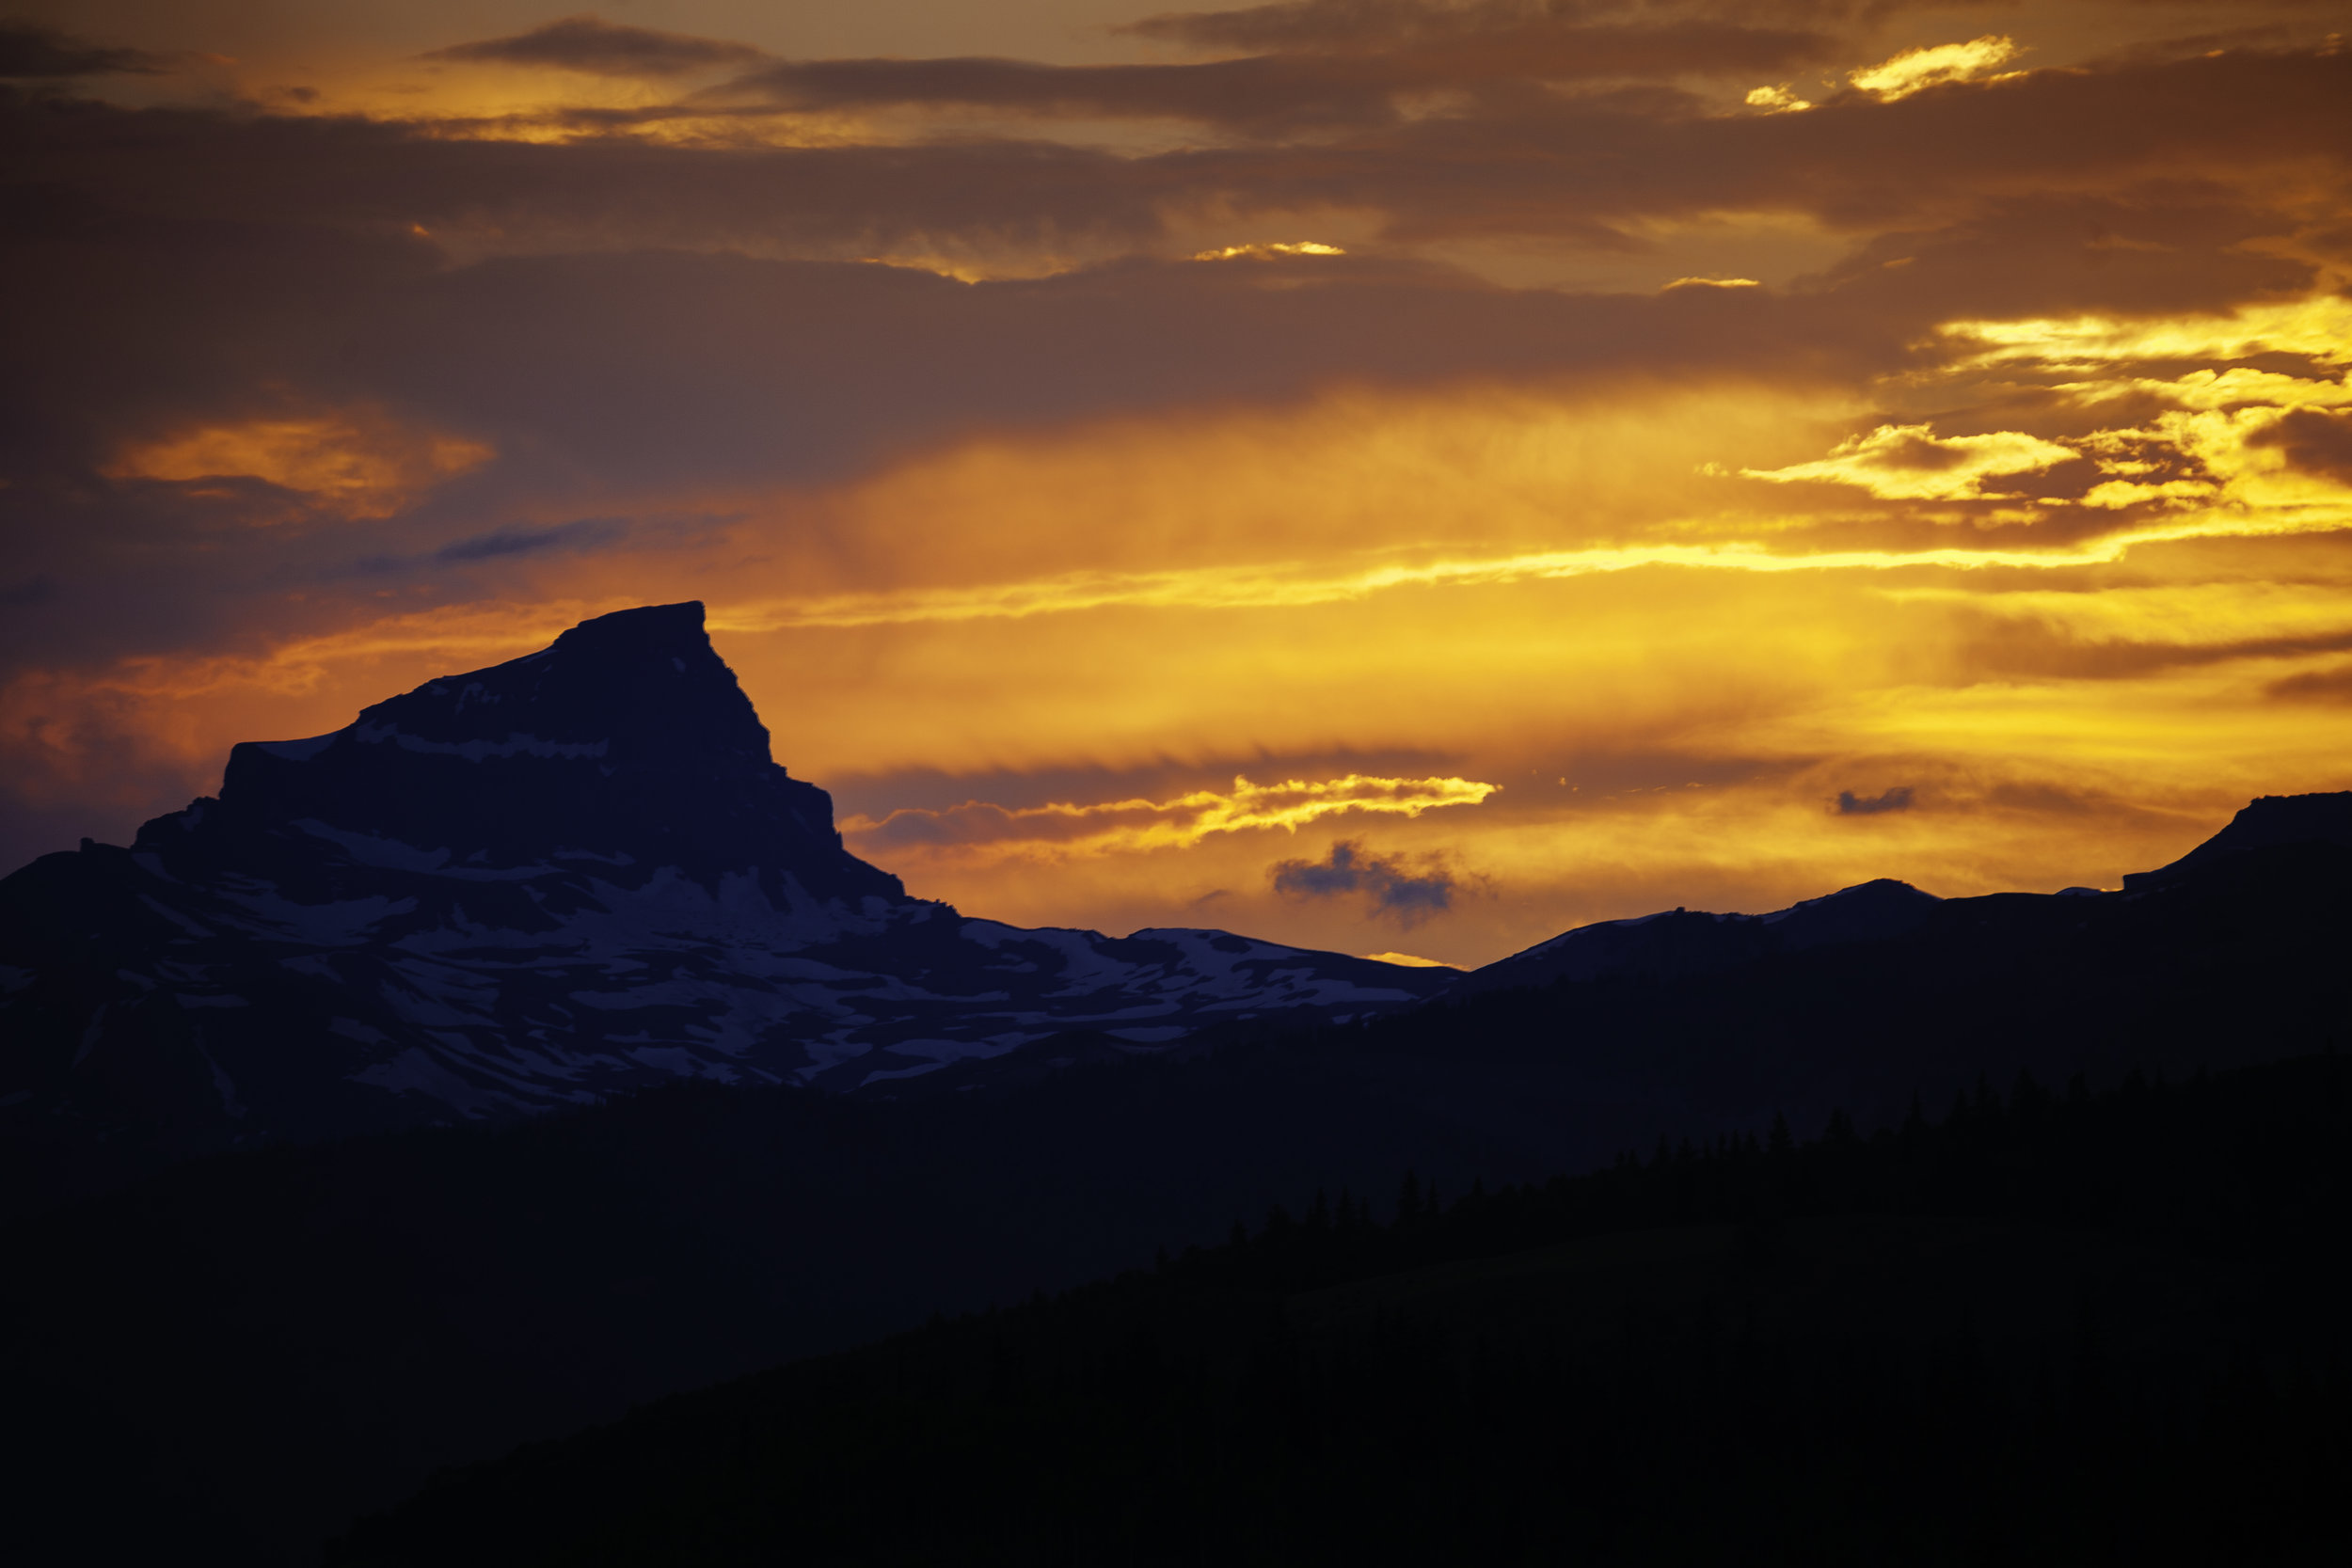 Uncompahgre Peak is the sixth-highest peak in Colorado, standing 14,321 ft. above sea level.